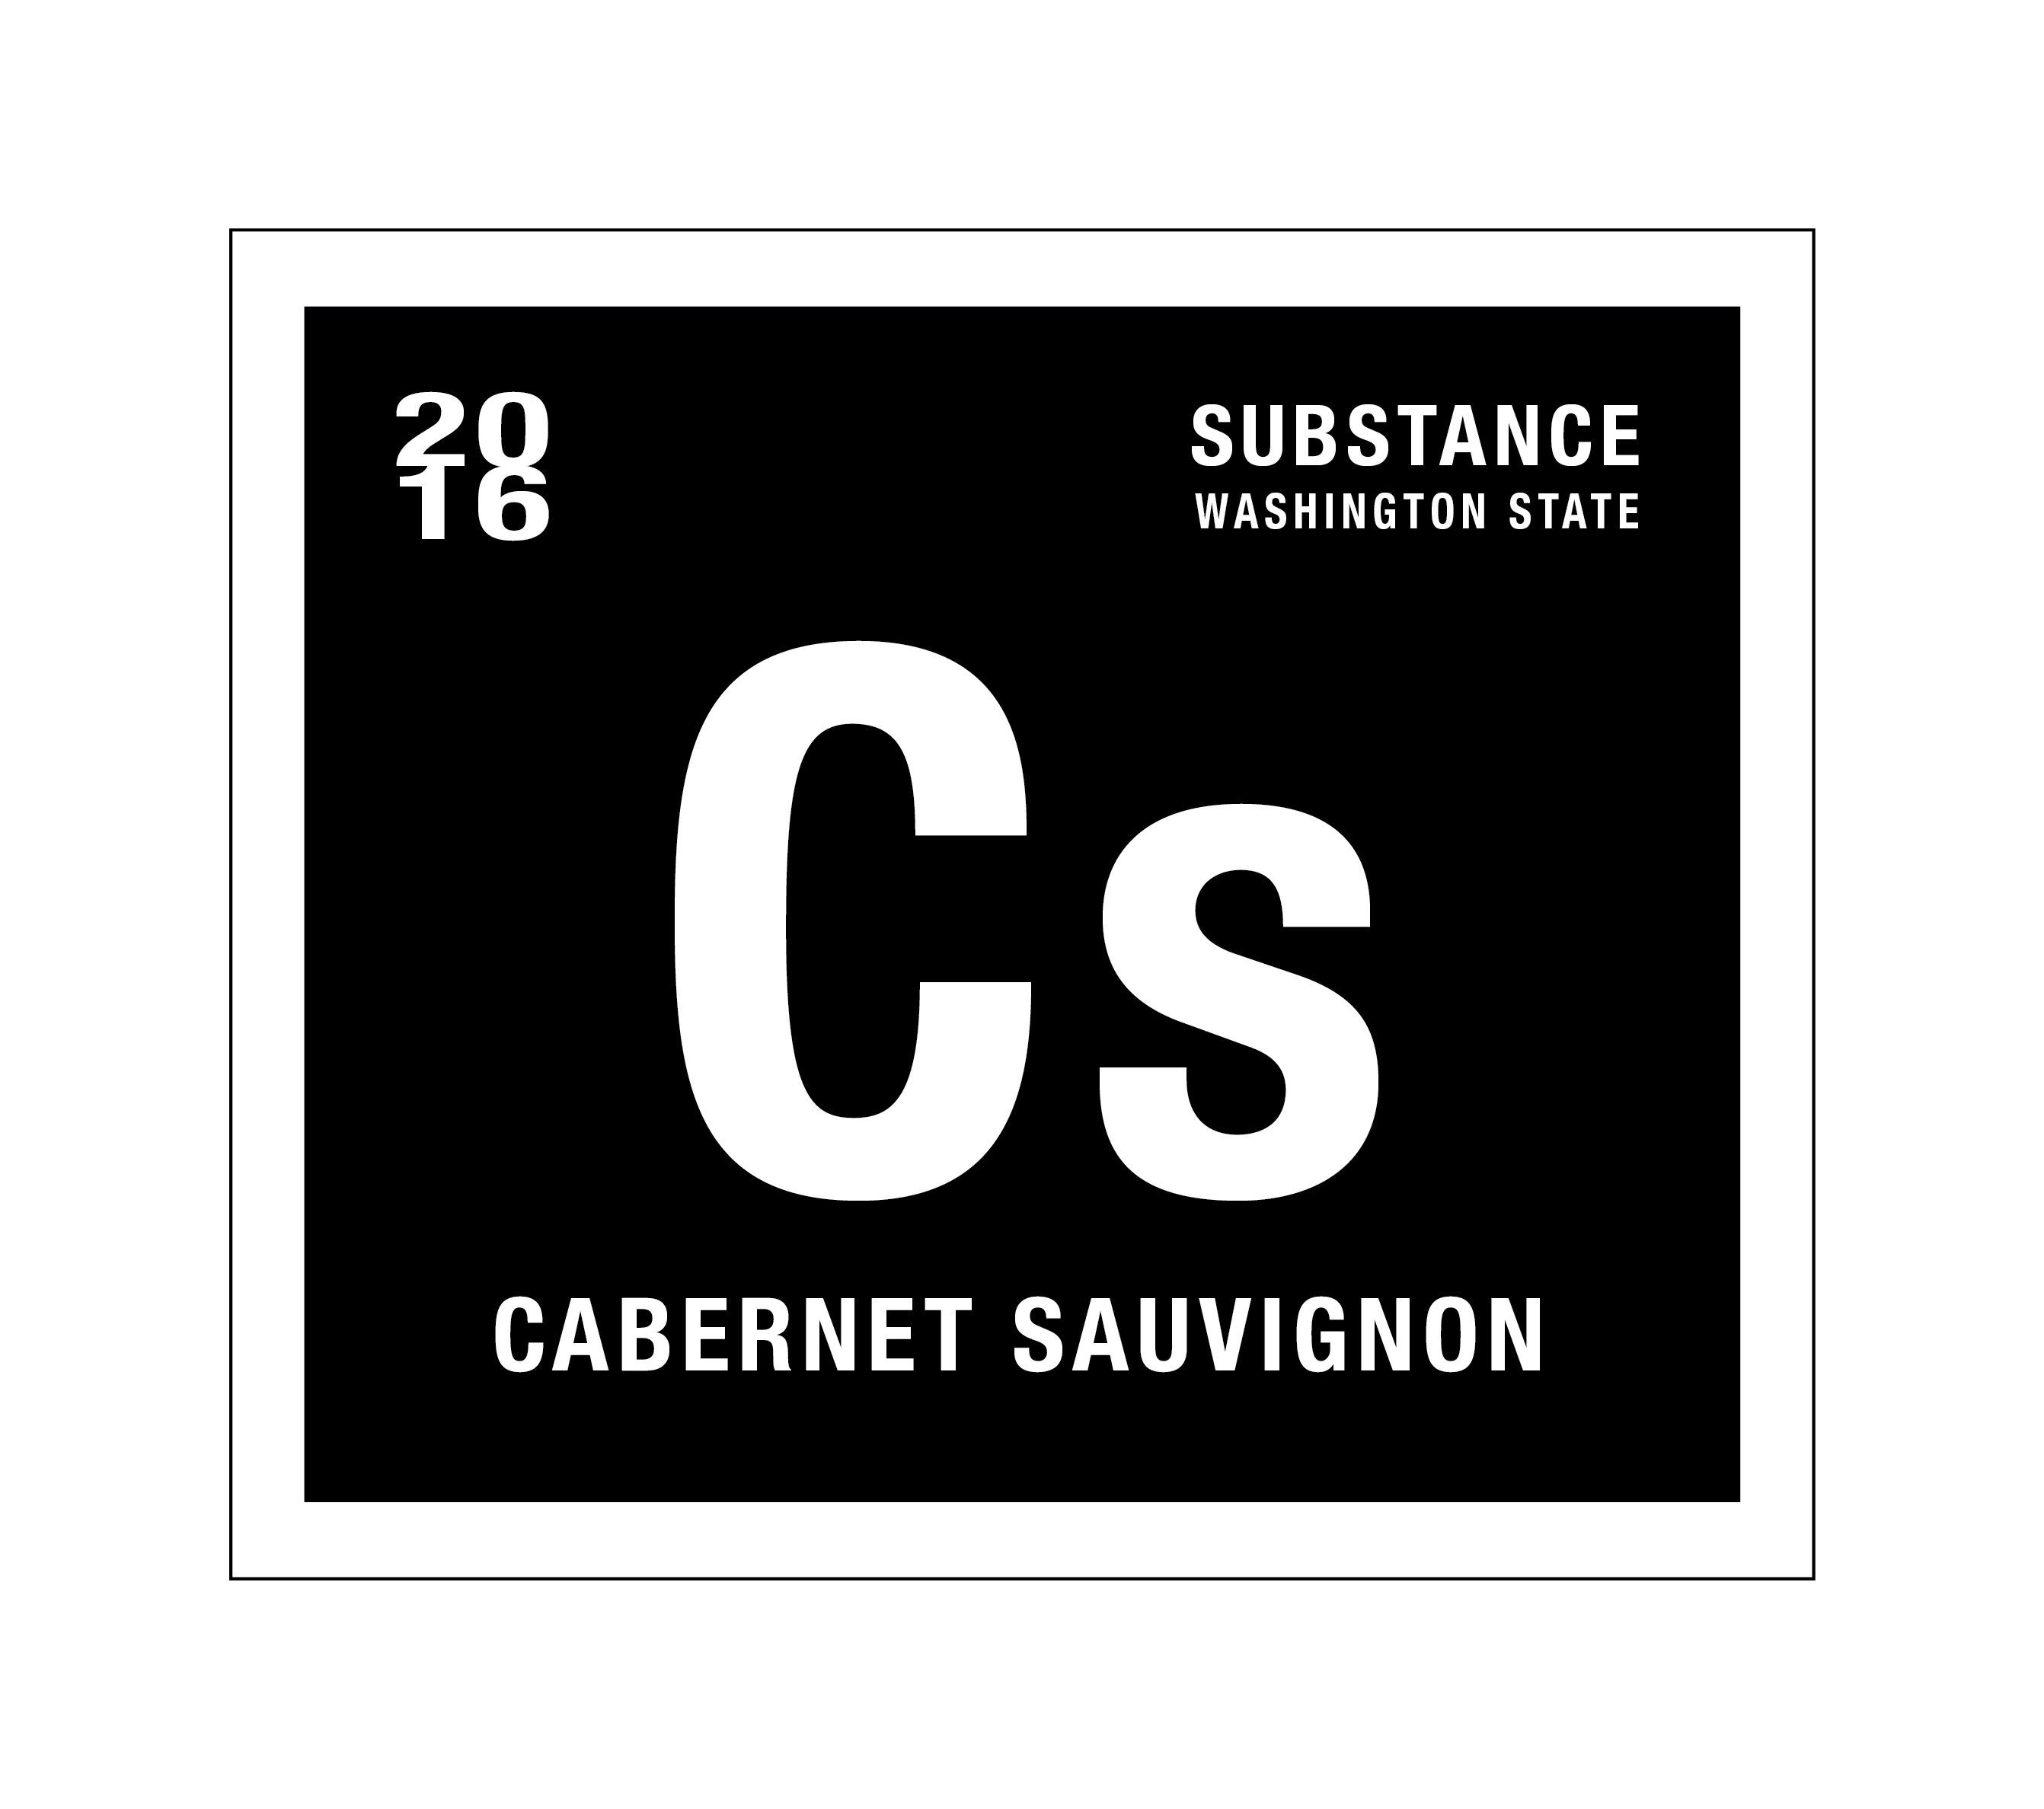 2016 Charles Smith Substance Cs Cabernet Sauvignon